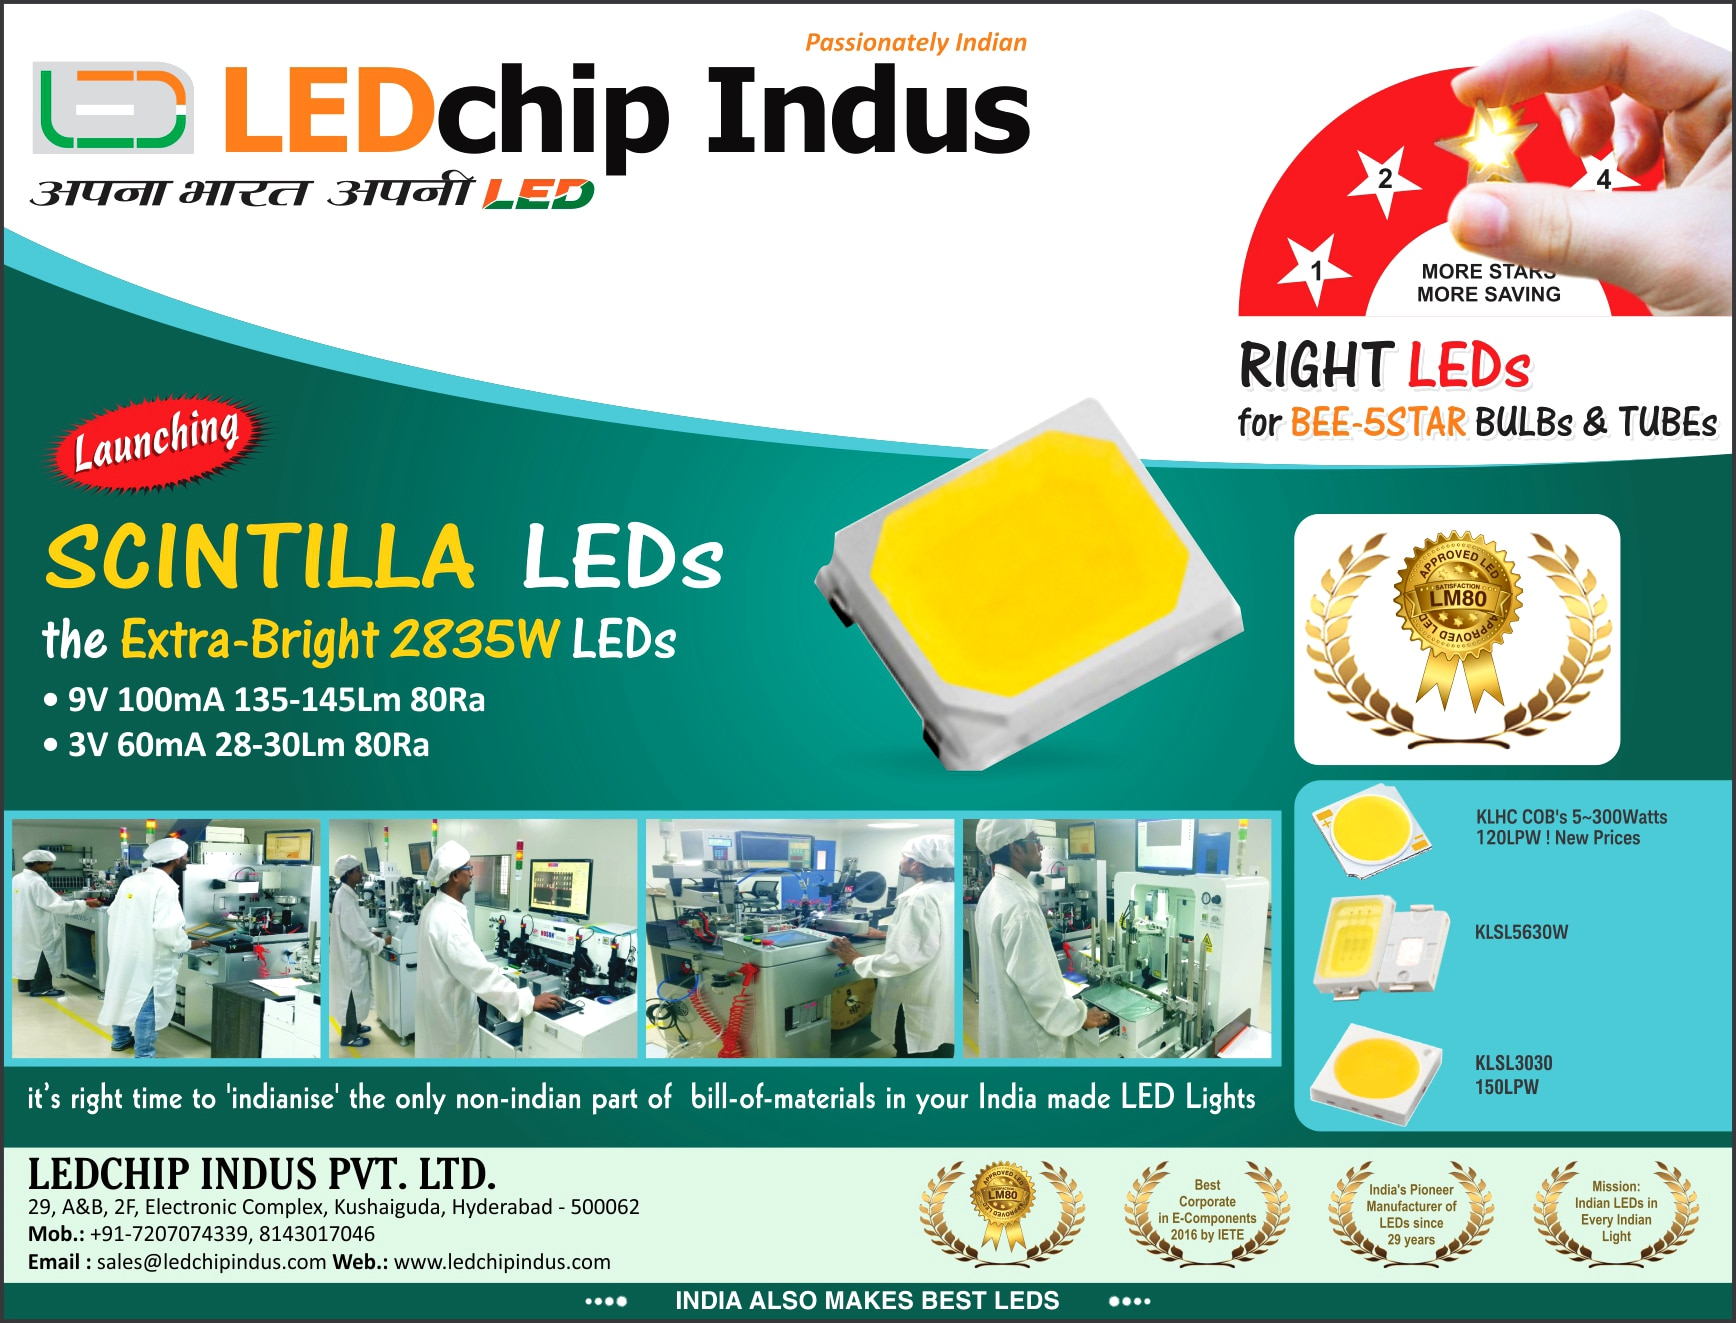 Great Opportunity ! Upgrade your Bulbs & Batons to BEE-5STAR Category with 155 Lumens/watt SCINTILLA SMD 2835 LEDs  at NO_EXTRA_COST!9V 100mA 135-145Lm 80Ra3V 60mA 28-30Lm 80Ra (it's right time to 'Indianise' the only non-indian part of bill-of- Materials in your Indian made LED Lights)mail:sales@ledchipIndus.com Wedsite: www.ledchip.incontact:8143017046